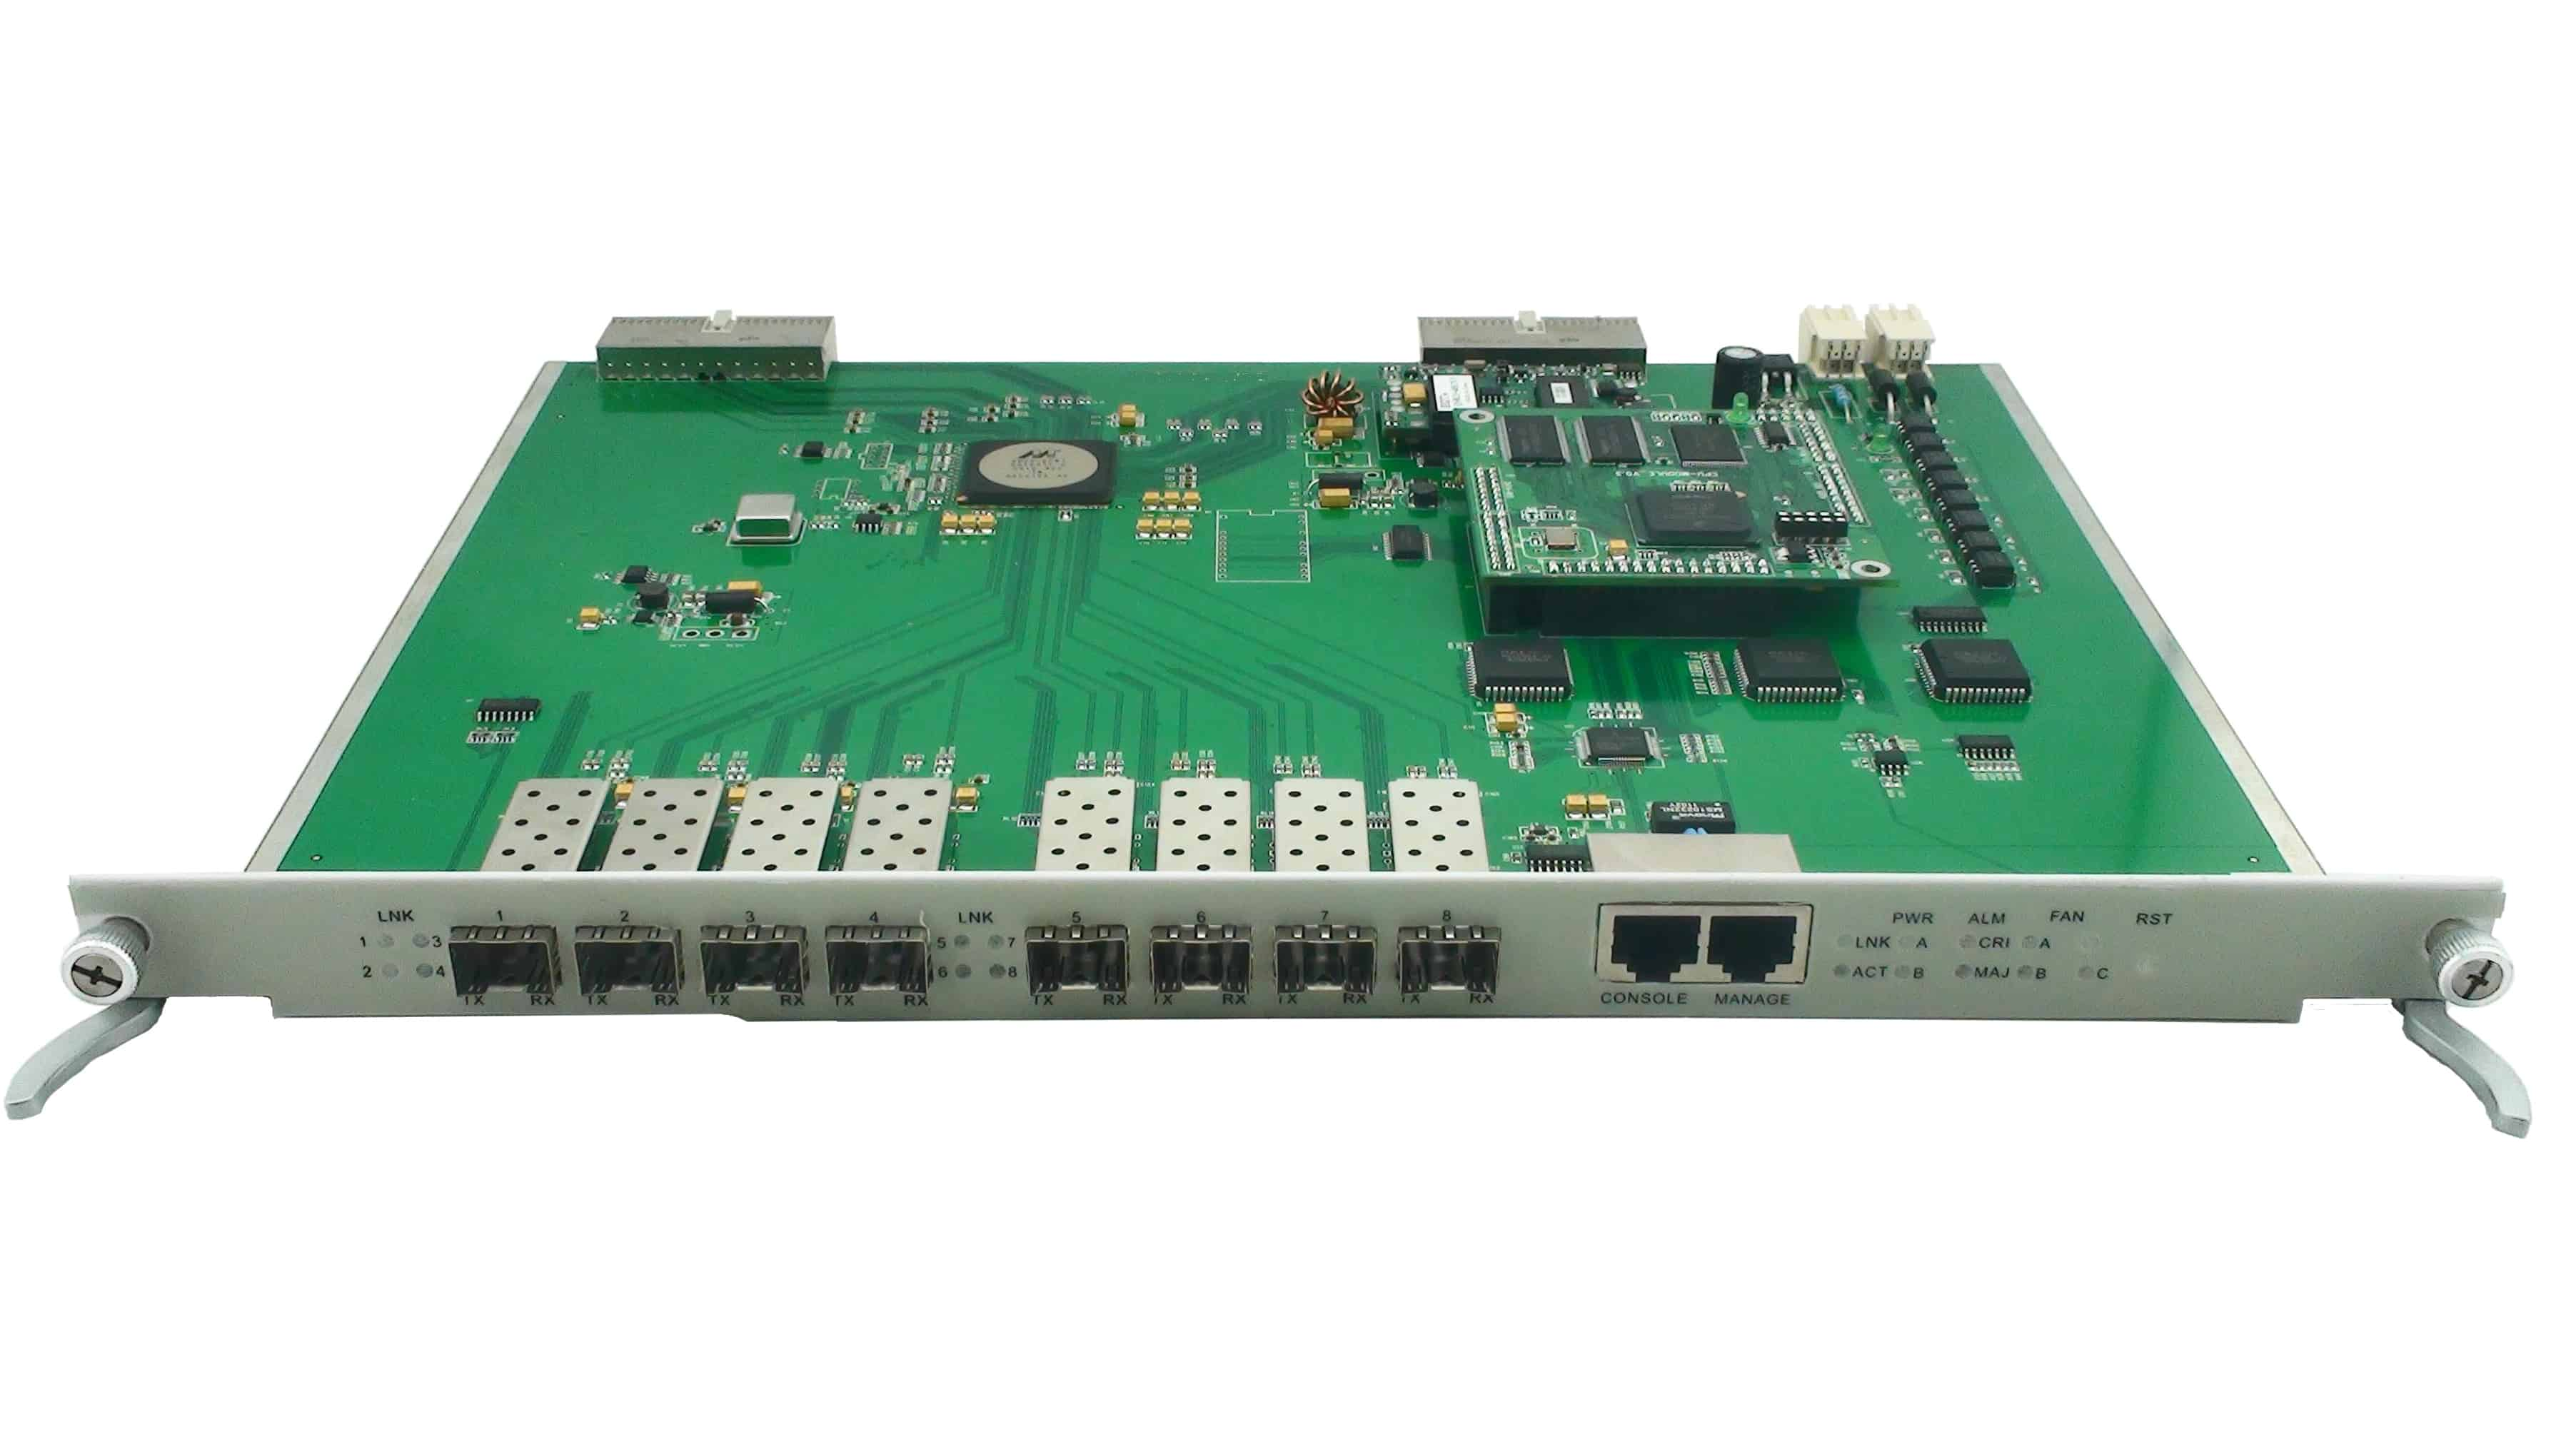 Main Control Card For Modular An E Olt Supports Snmp Mib Ems System And Control Functions